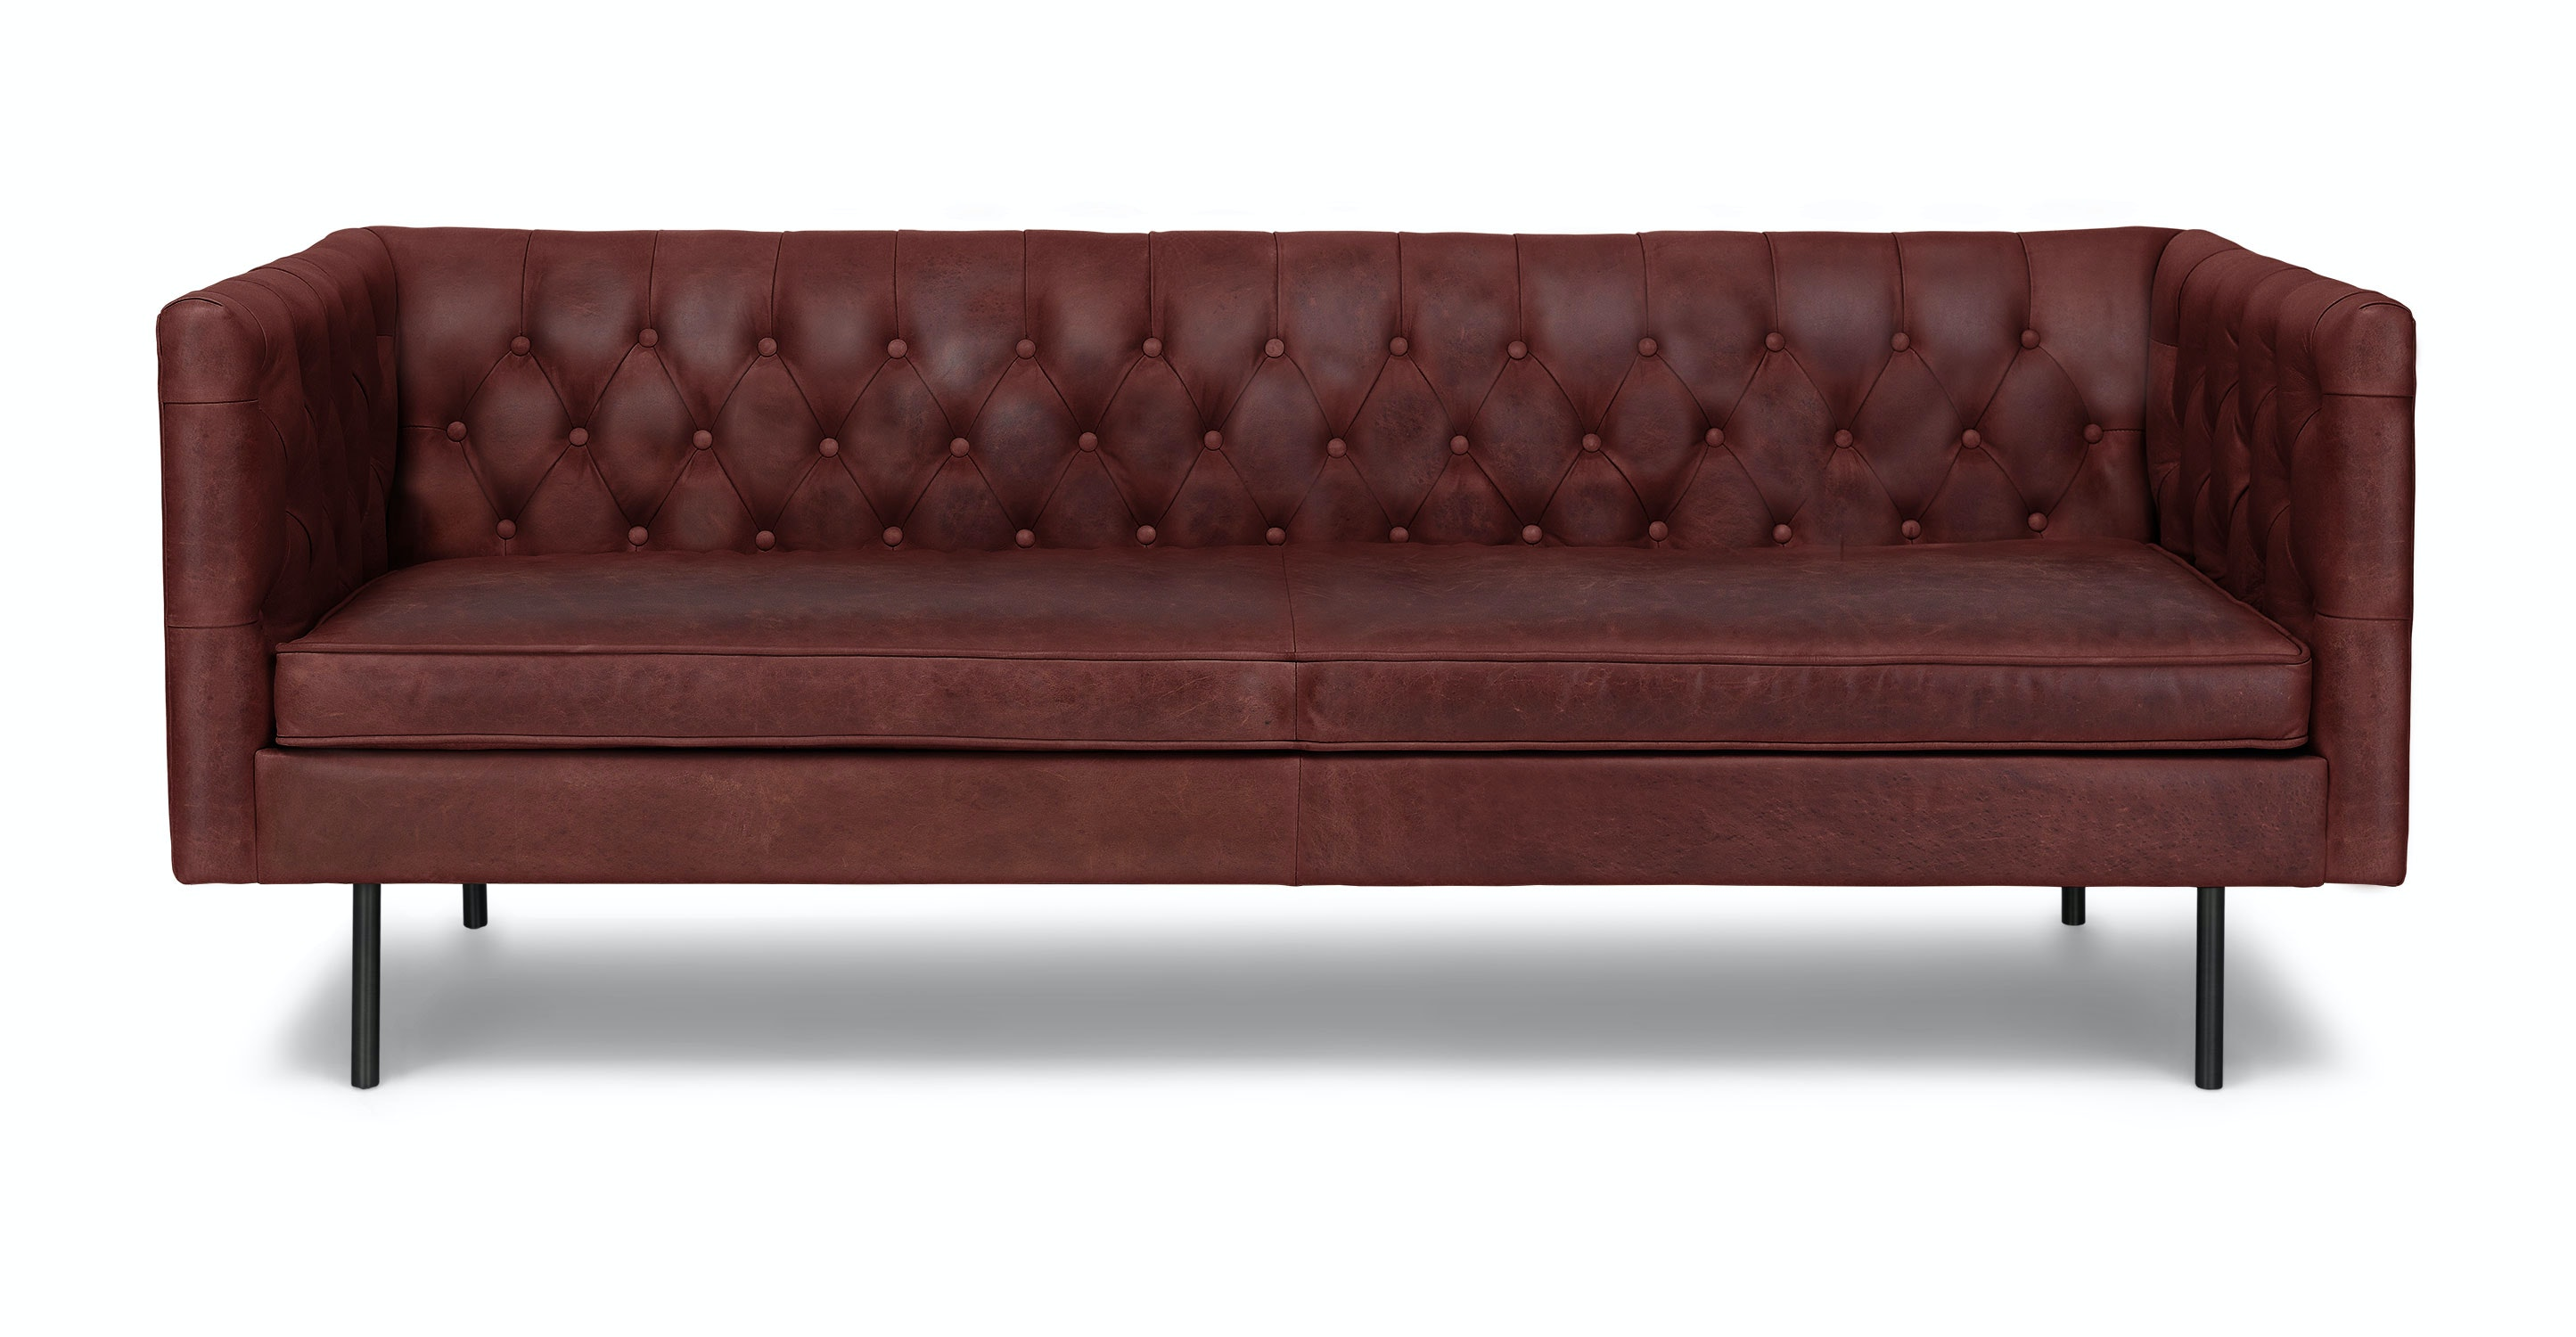 oxblood leather sofa modern chesterfield leather sofa 79. Black Bedroom Furniture Sets. Home Design Ideas